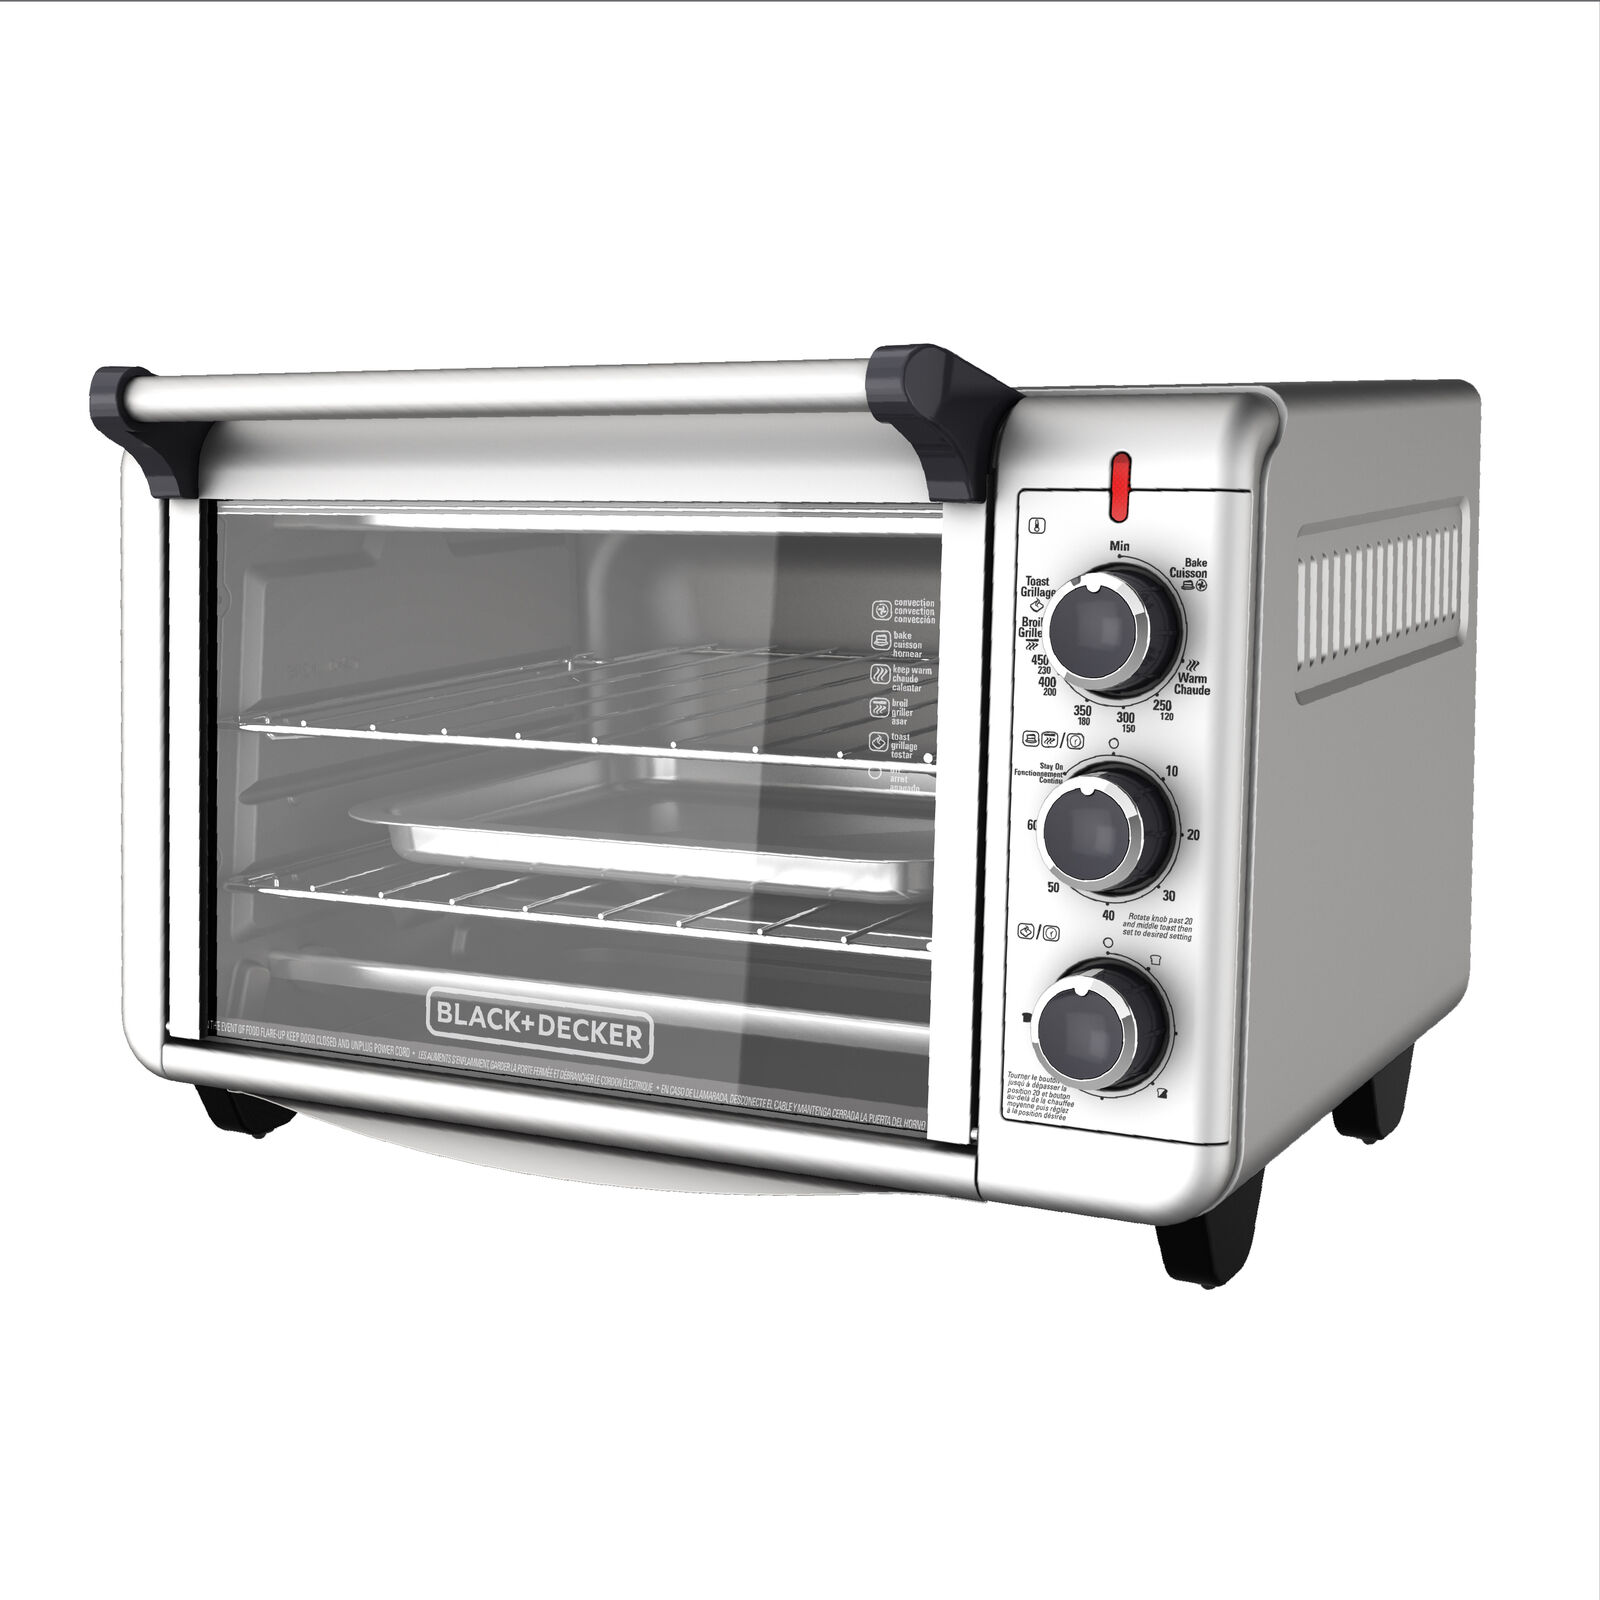 Toaster Oven Countertop Convection Ovens 2 Shelf 6 Slice Stainless Steel Finish